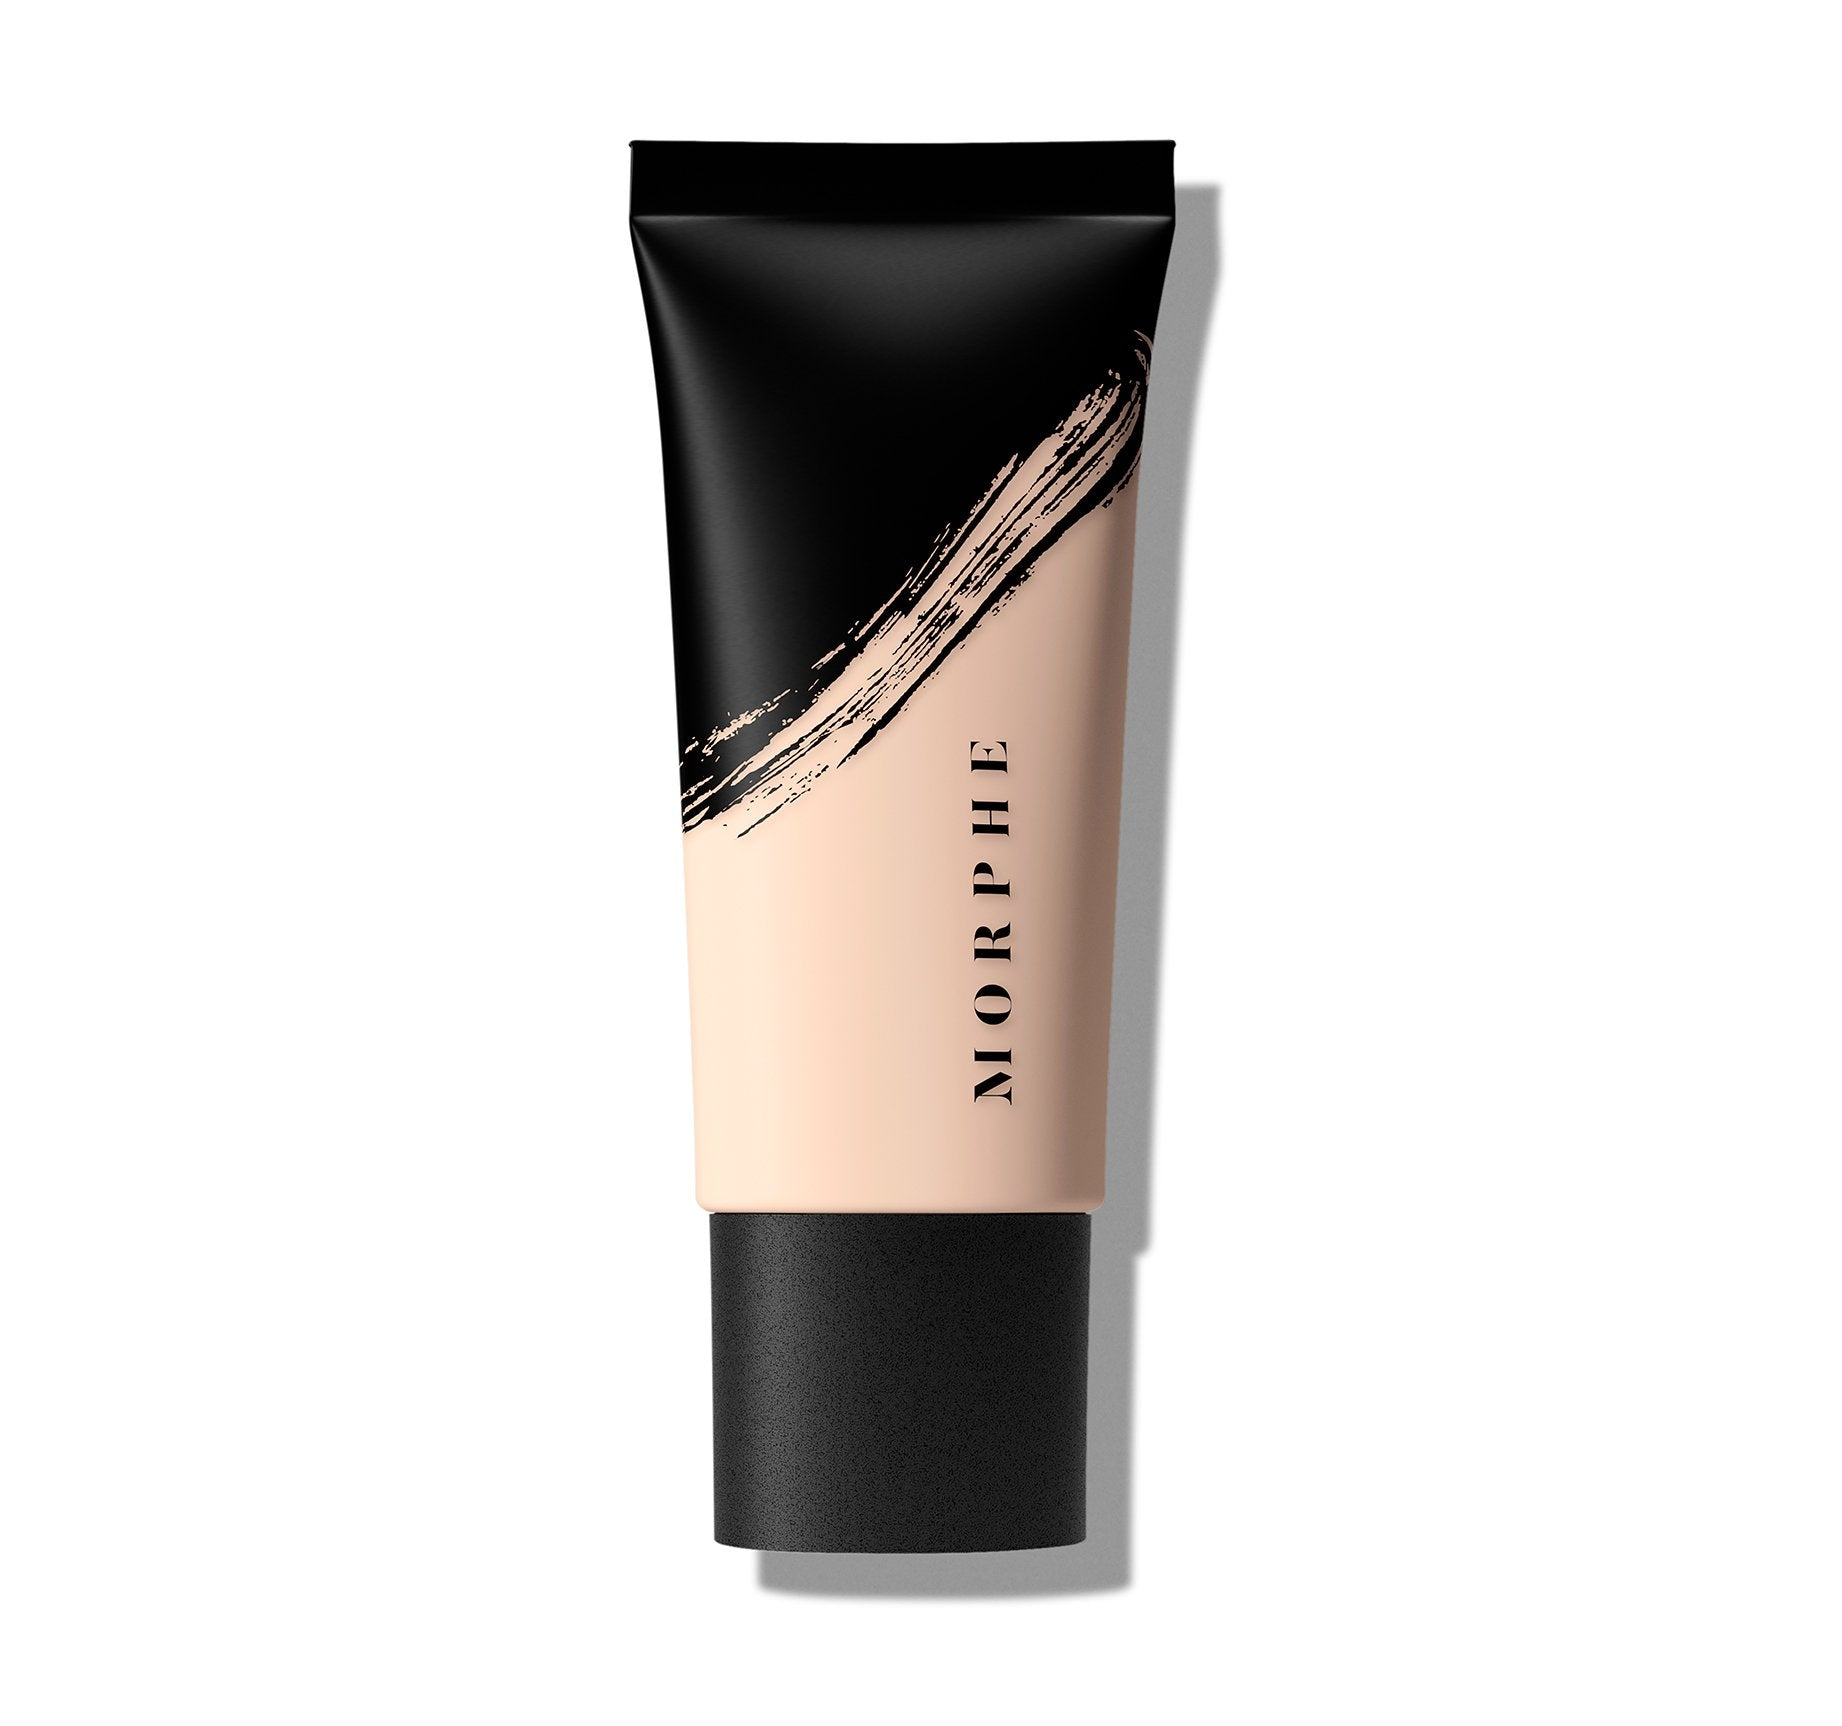 FLUIDITY FULL-COVERAGE FOUNDATION - F1.10, view larger image